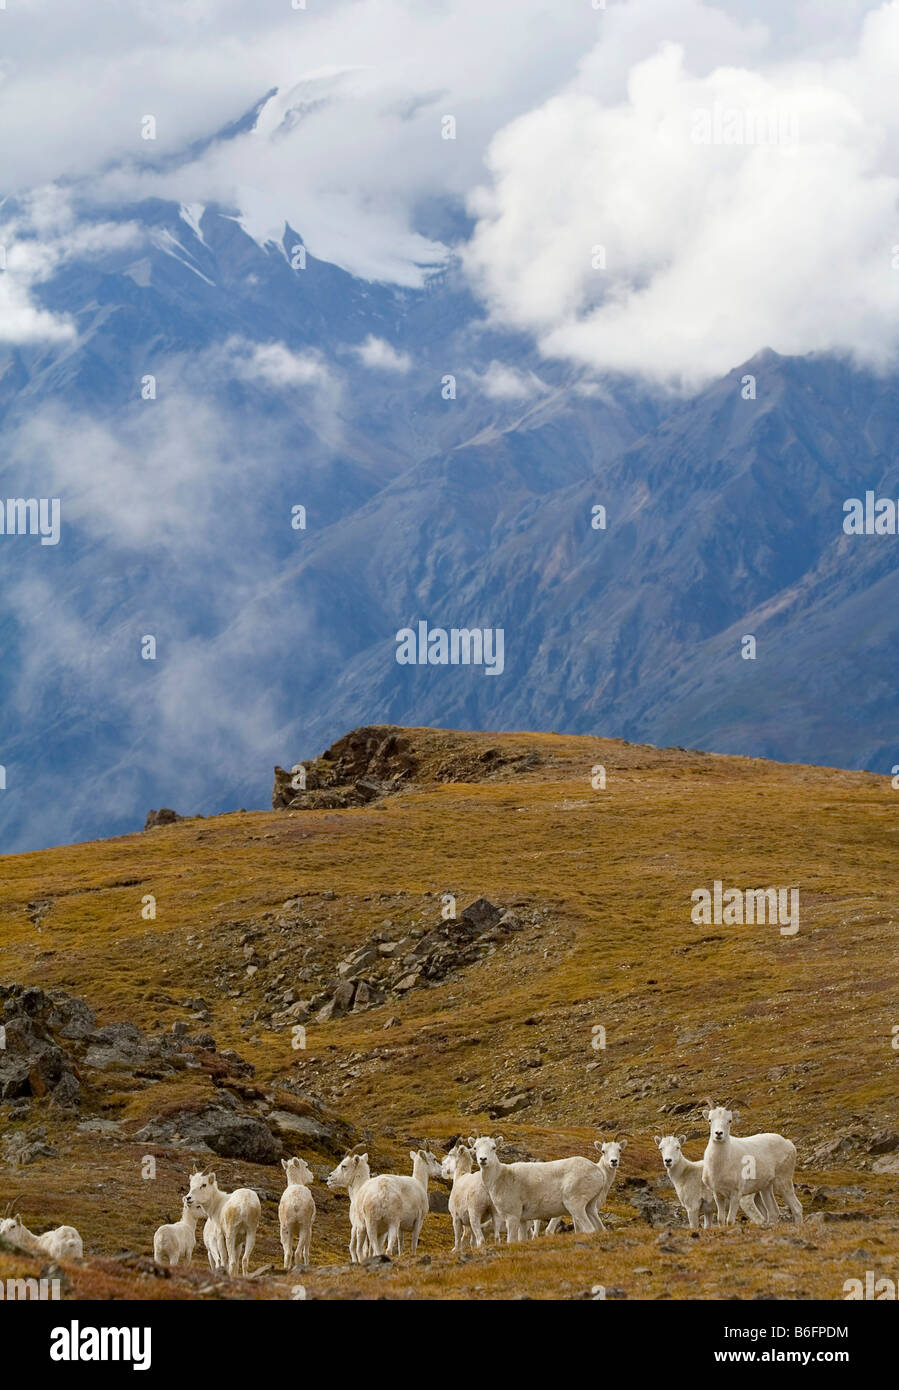 Group of Dall Sheep (Ovis Dalli) on an alpine meadow, Hoge Pass, St. Elias Mountains behind, Donjek Route, Kluane - Stock Image